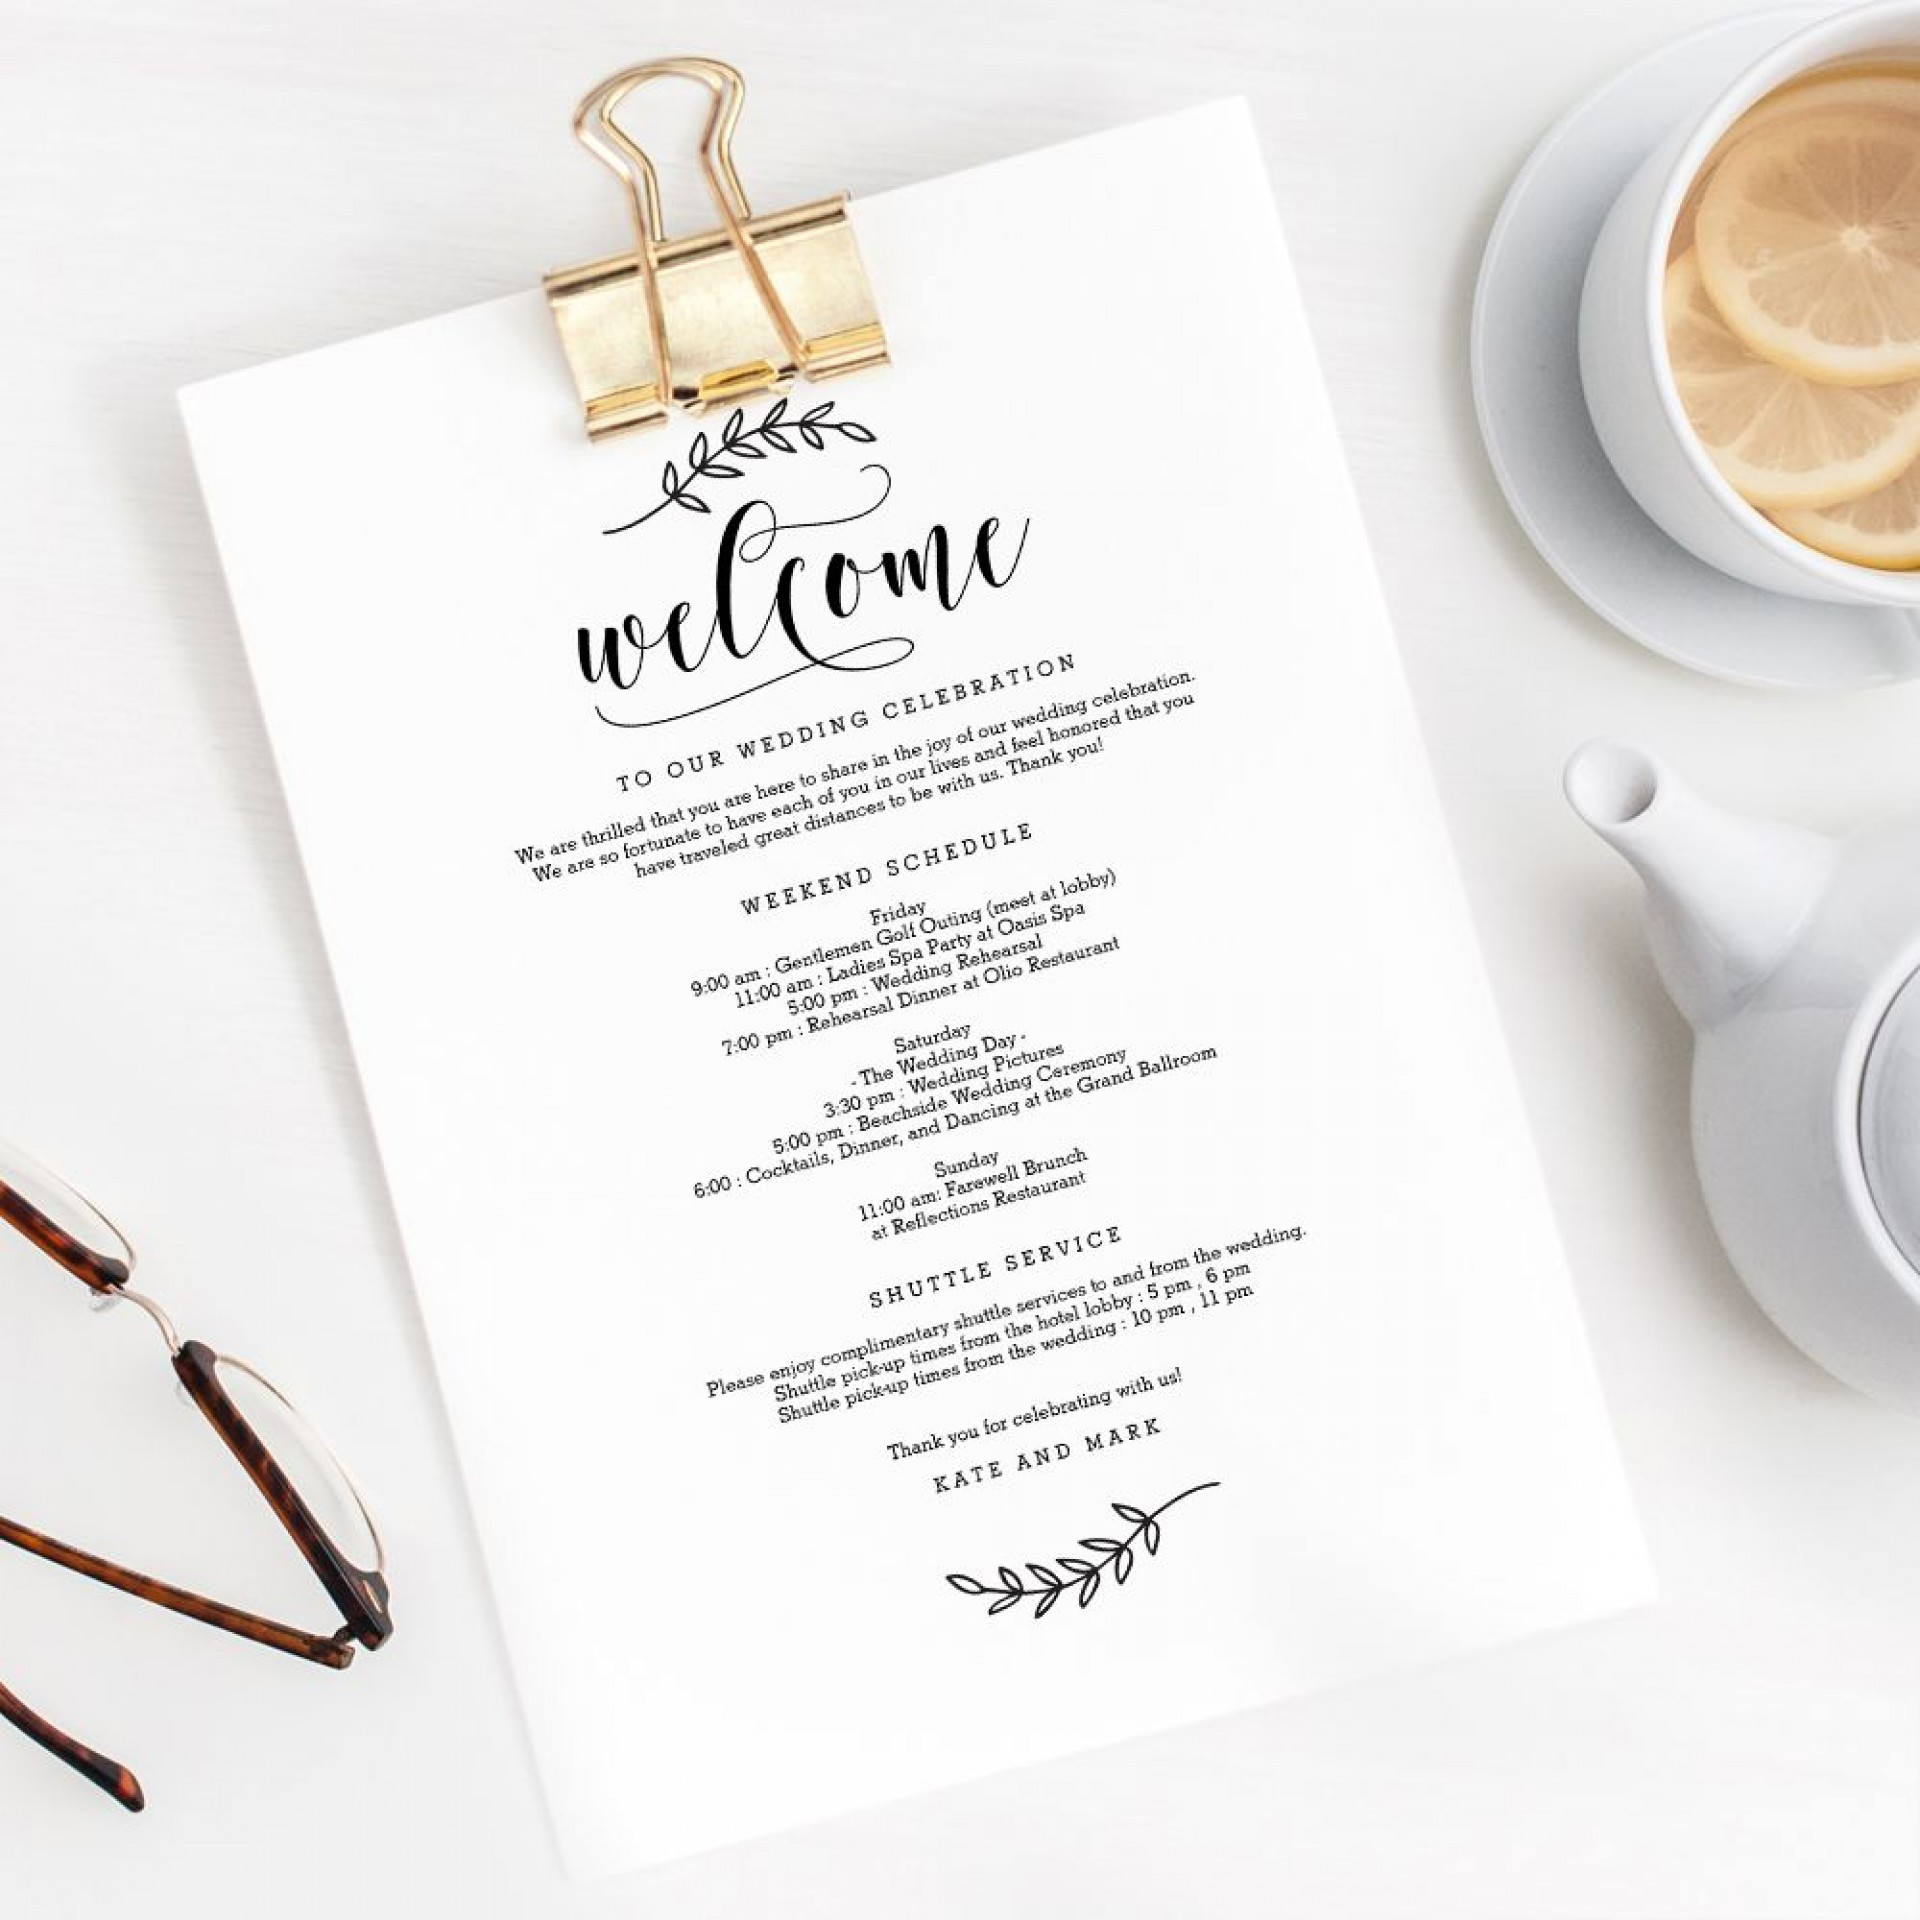 008 Surprising Wedding Welcome Letter Template Free High Def  Bag1920